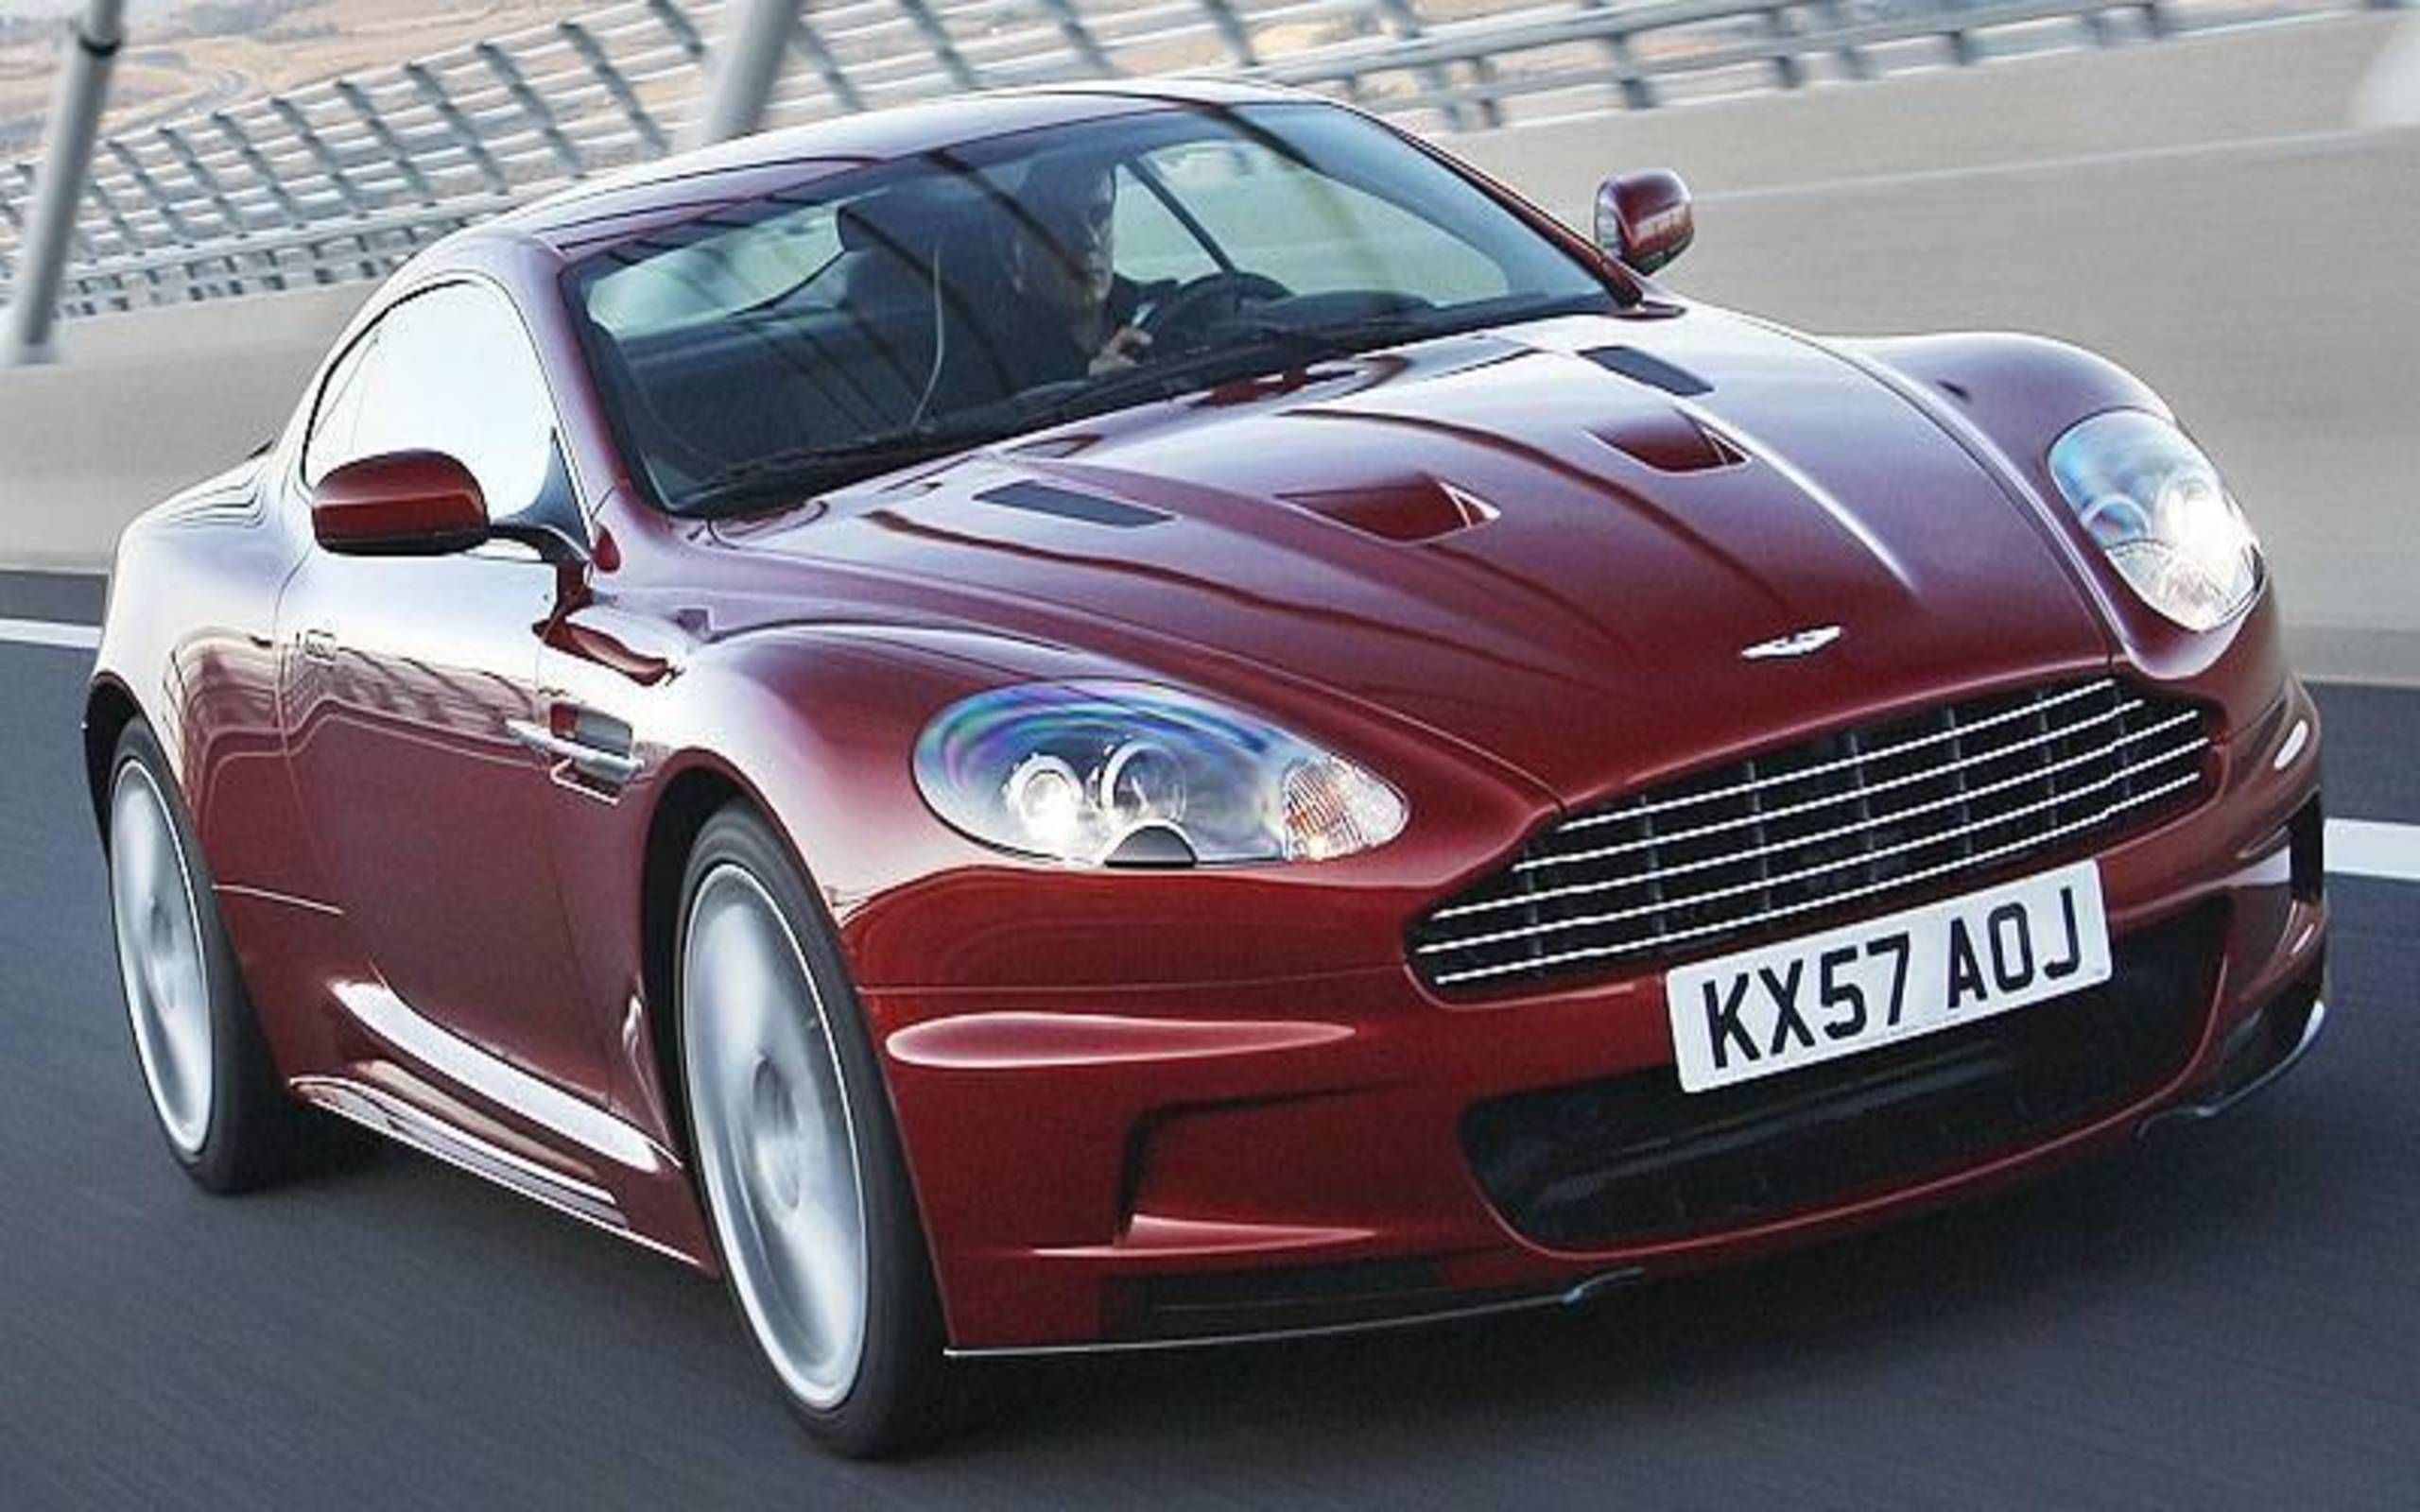 2008 Aston Martin Dbs Drive Another Day As Good As 007 Ever Had It